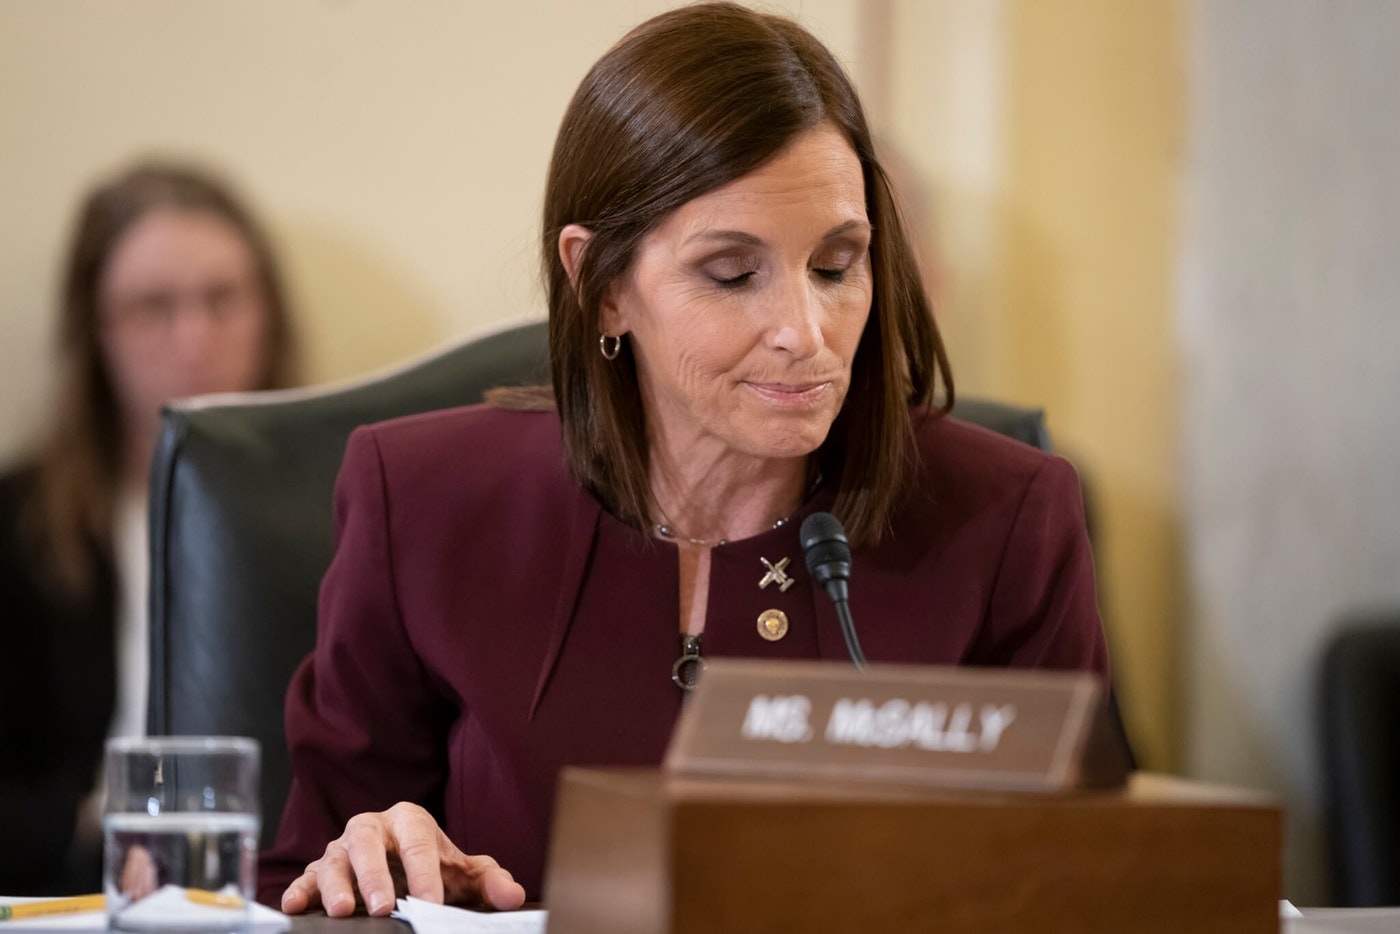 During a hearing by the Senate Armed Services Subcommittee on Personnel about prevention and response to sexual assault in the military, Sen. Martha McSally, R-Ariz., recounts her own experience while serving as a colonel in the Air Force, on Capitol Hill in Washington, Wednesday, March 6, 2019. McSally, the first female fighter pilot to fly in combat, says she was raped in the Air Force by superior officer. (AP Photo/J. Scott Applewhite)